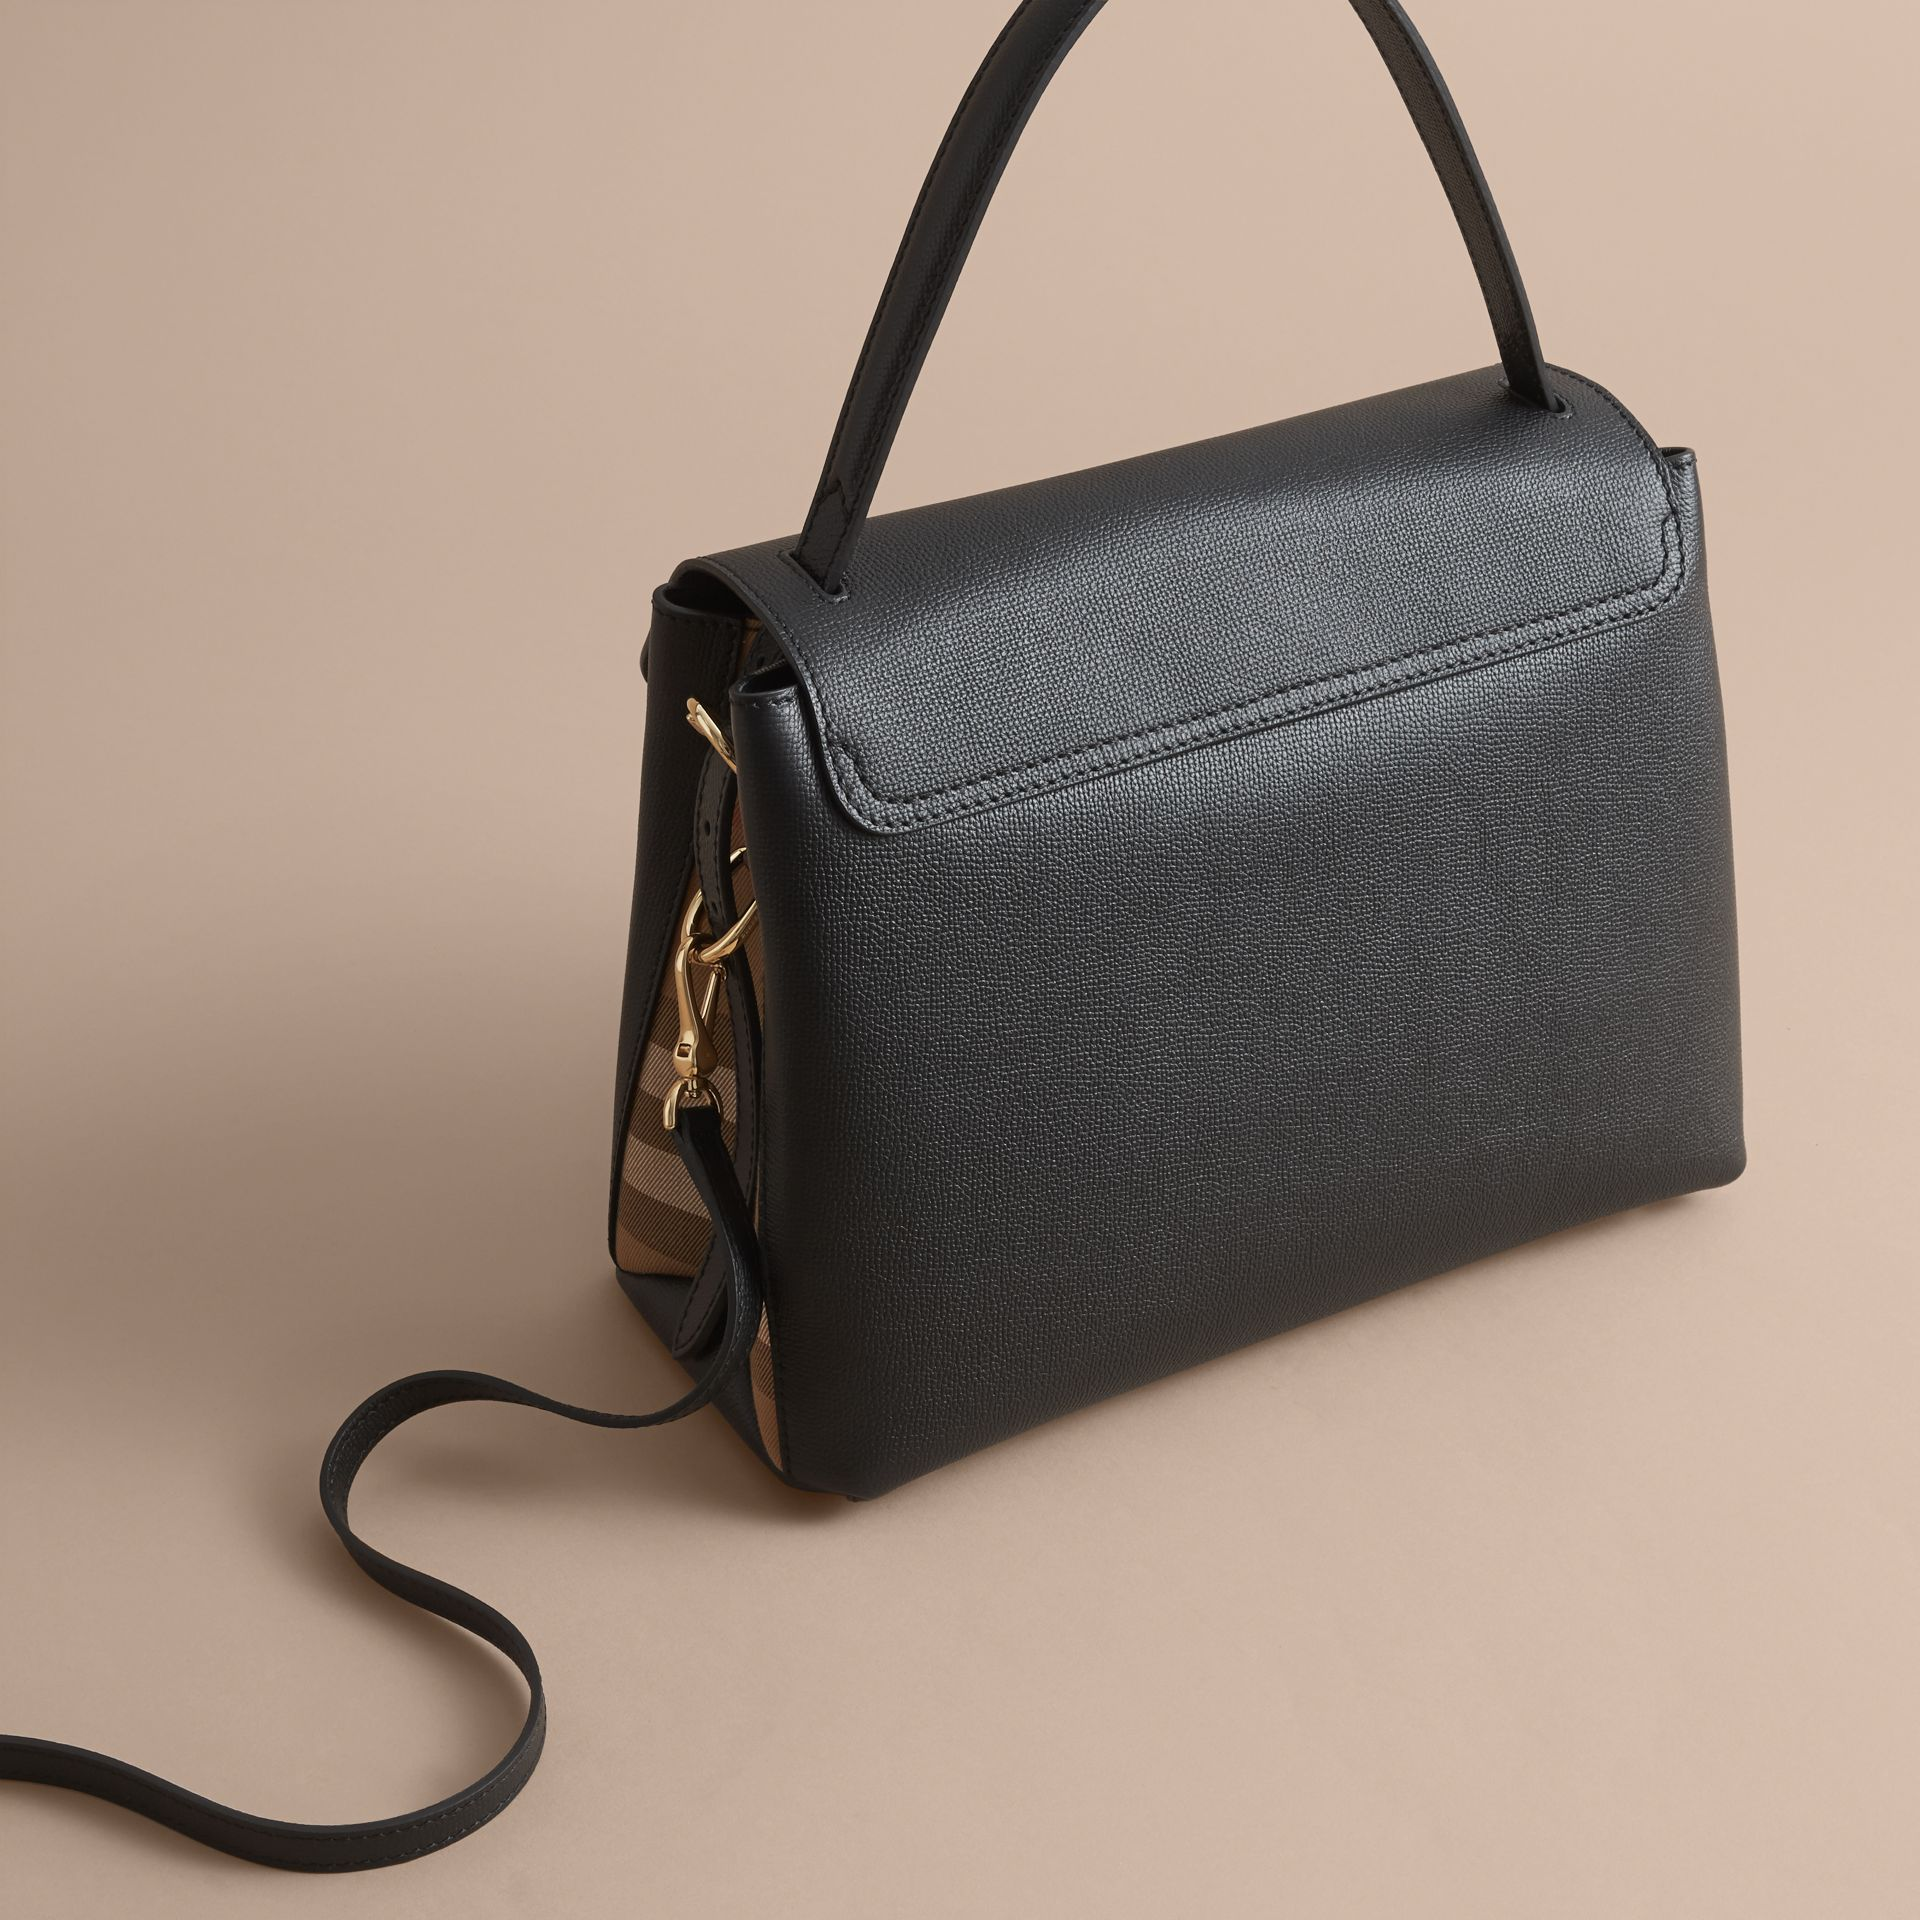 Medium Grainy Leather and House Check Tote Bag in Black - Women | Burberry United Kingdom - gallery image 5